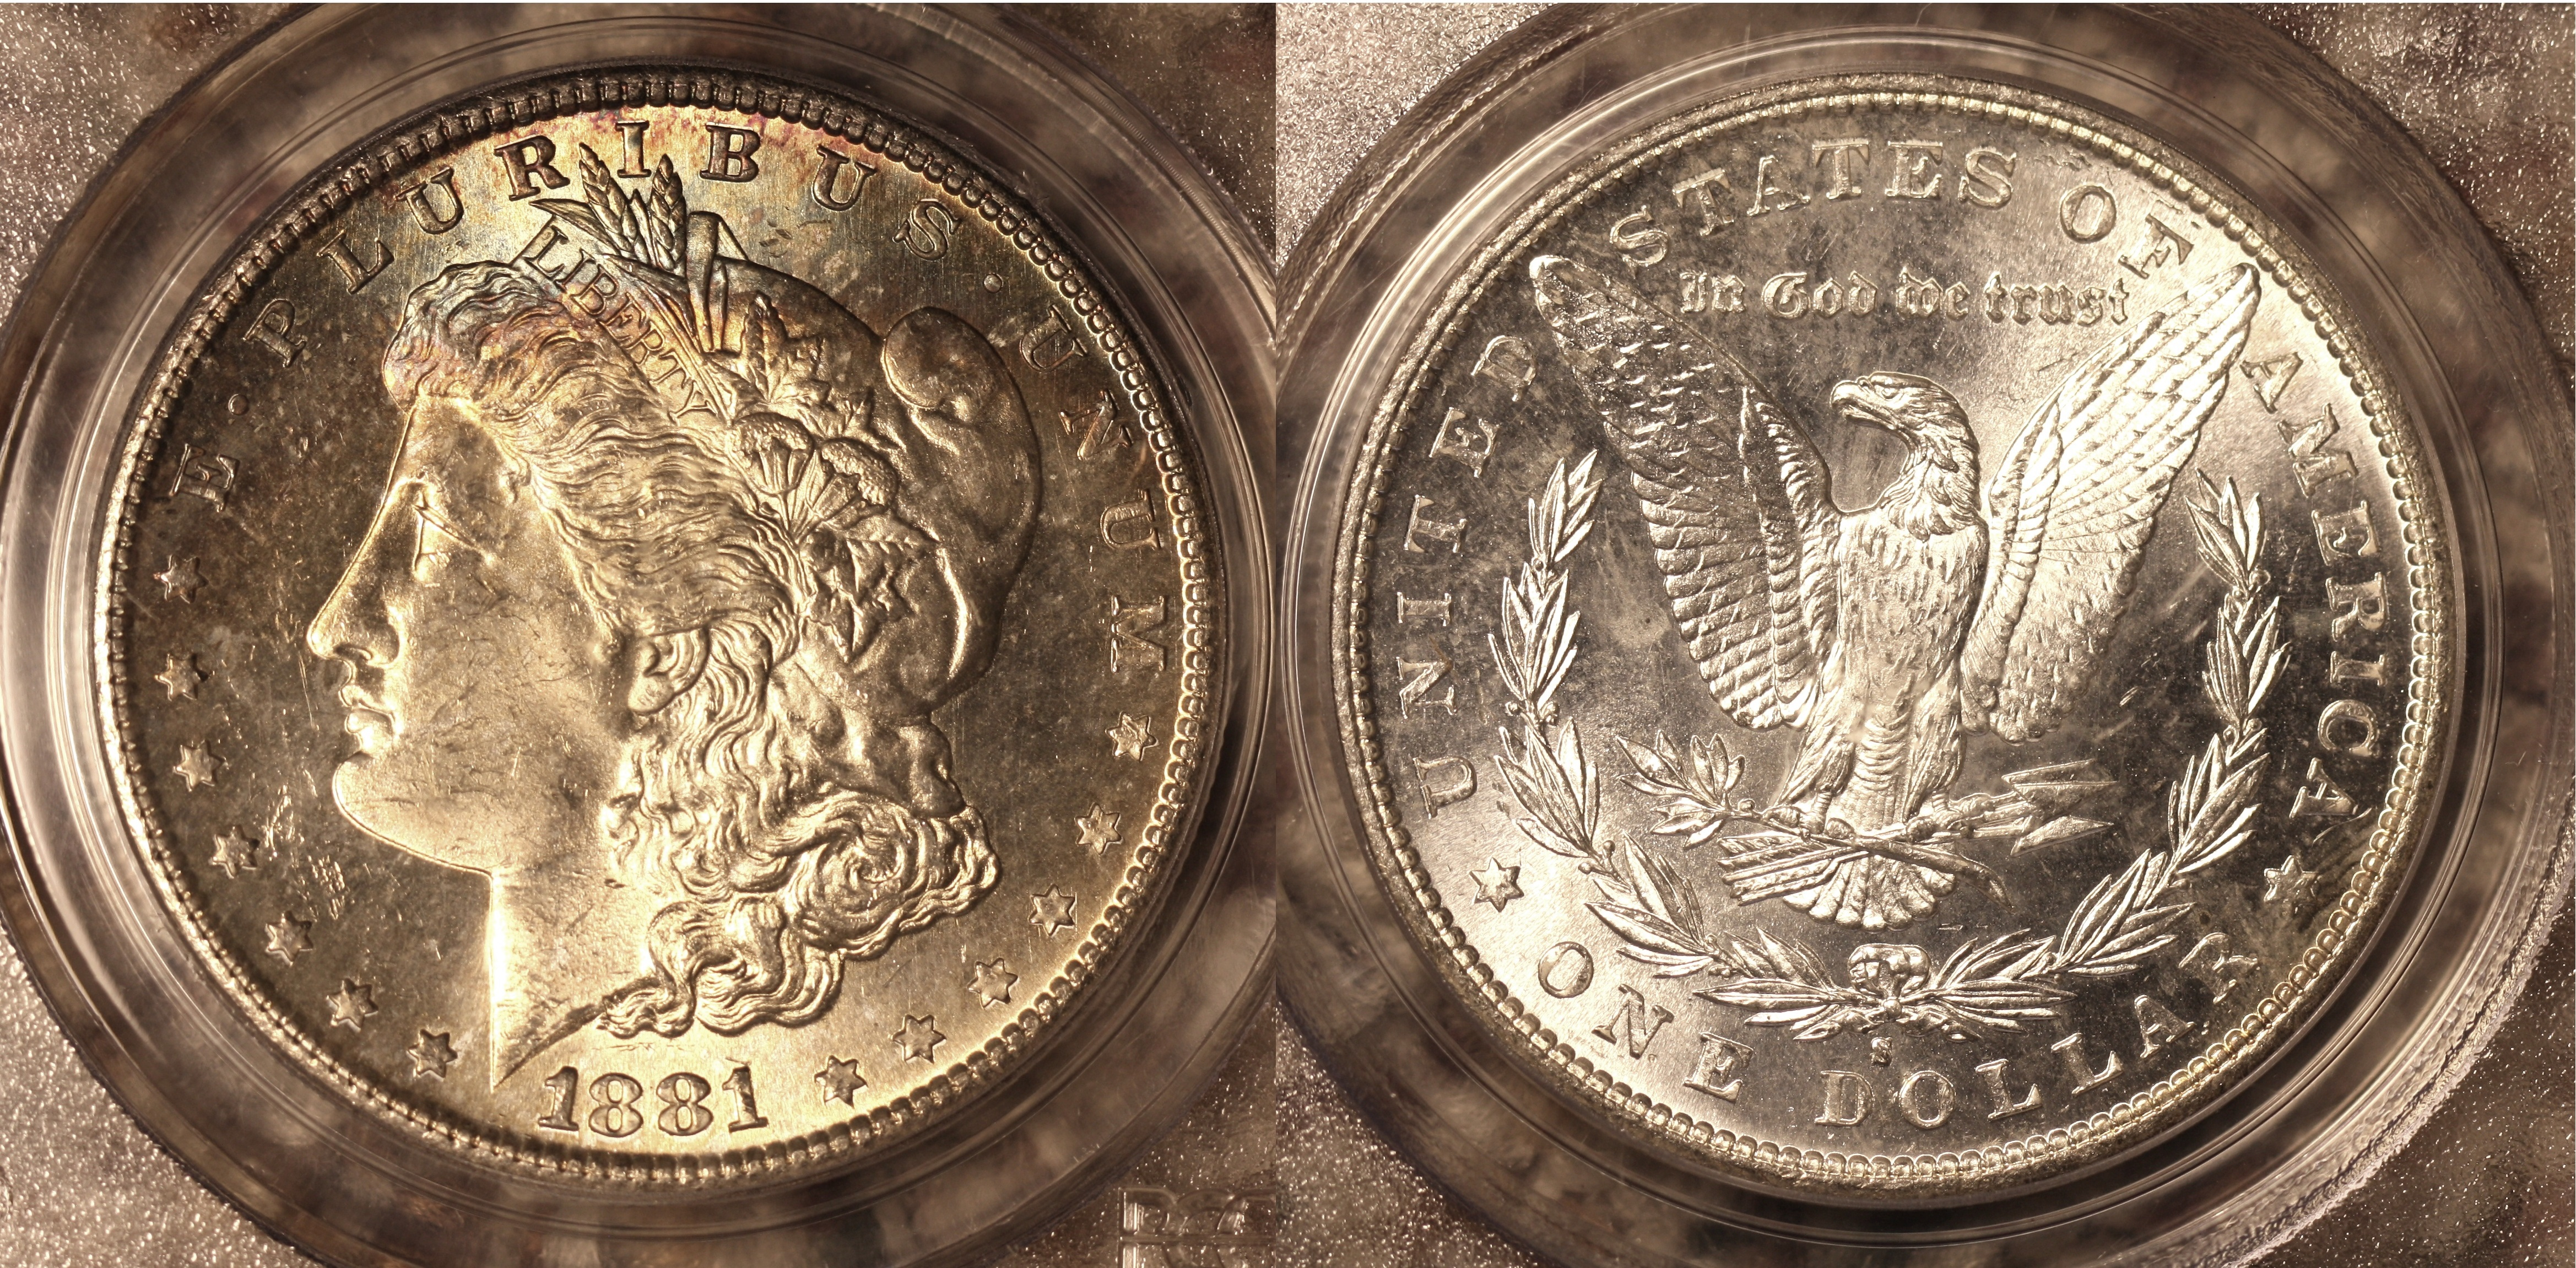 1881-S Morgan Silver Dollar PCGS MS-64 #d camera